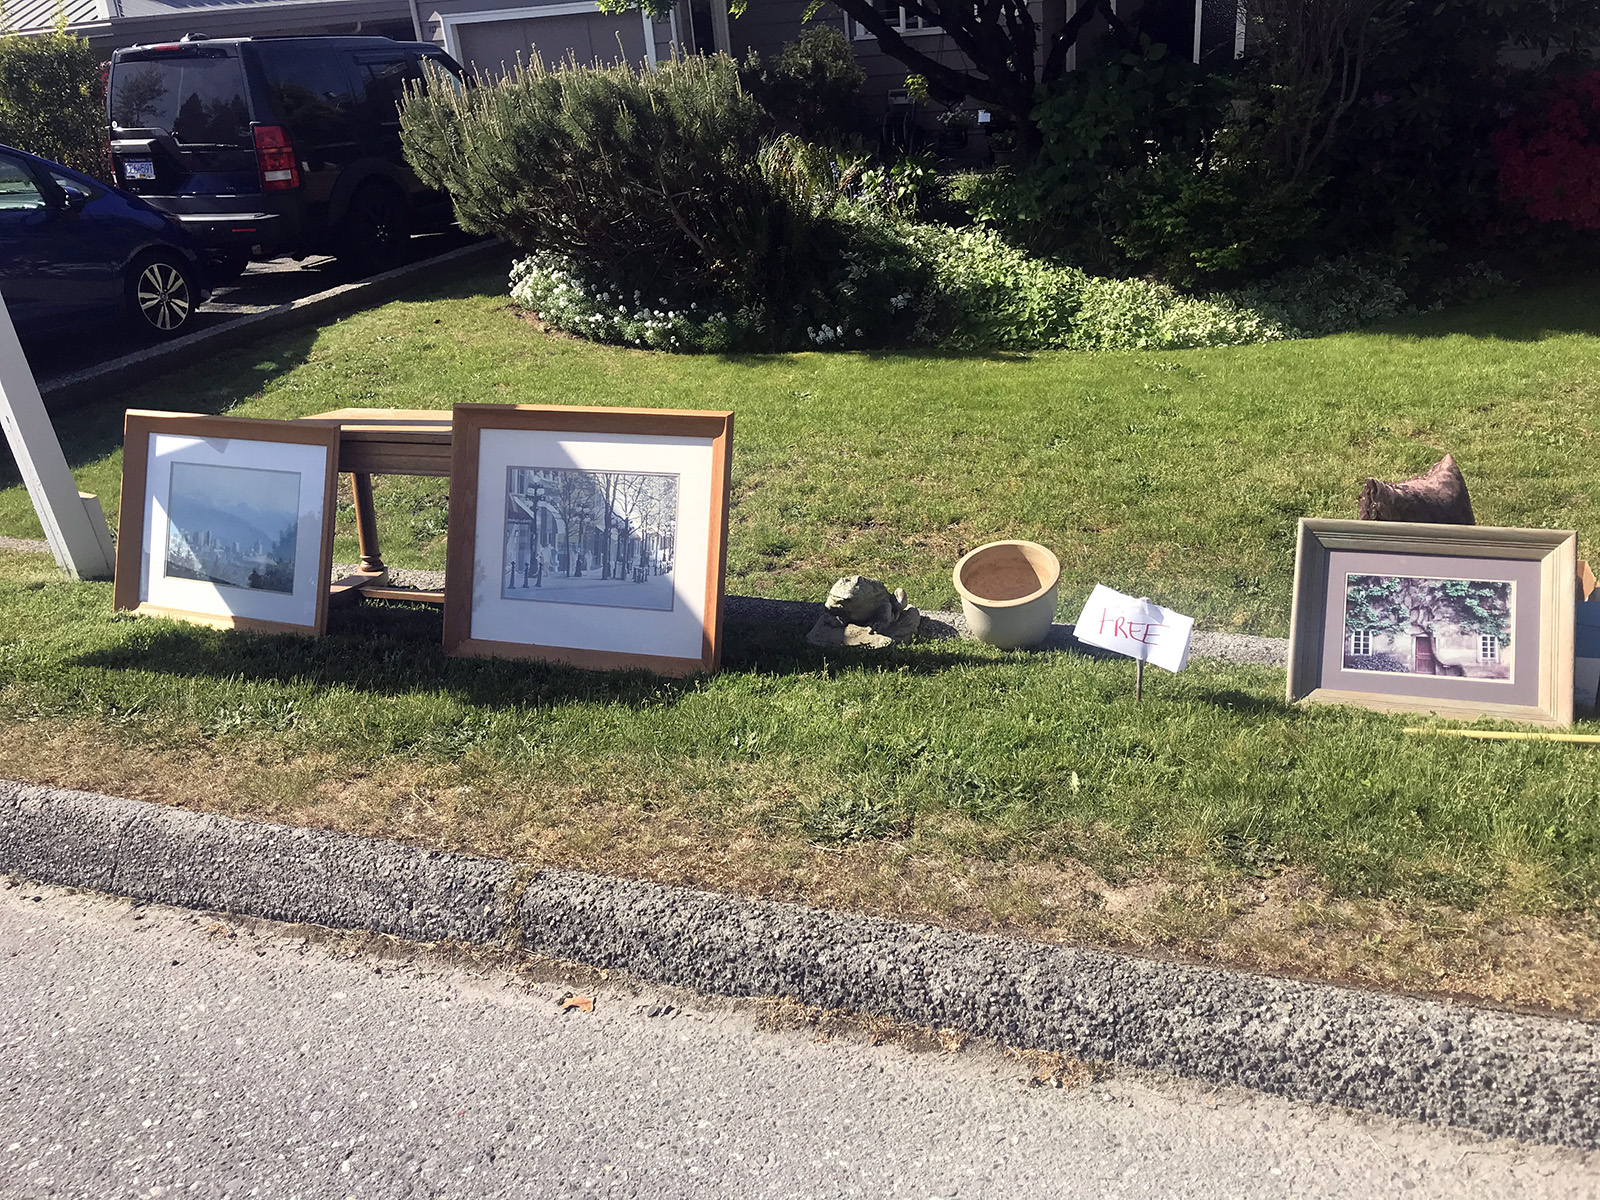 Suburban giveaway, North Vancouver 2019